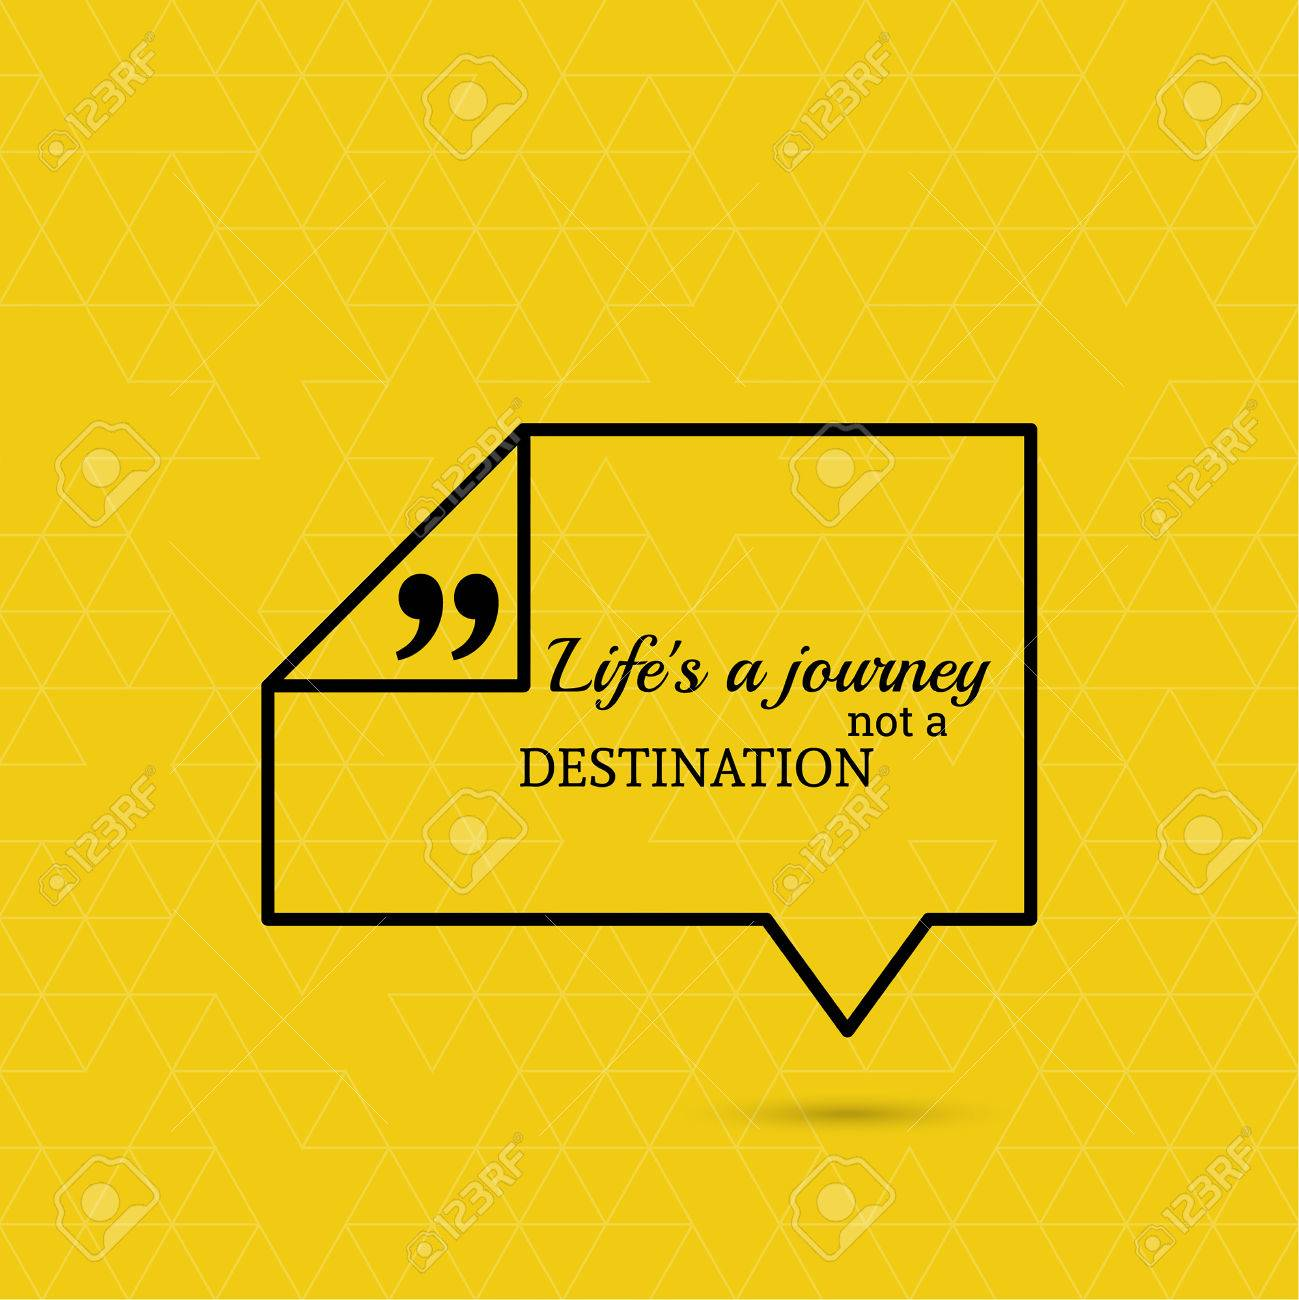 Wise Sayings And Quotes About Life Inspiration Inspirational Quotelife Is A Journey Not A Destinationwise